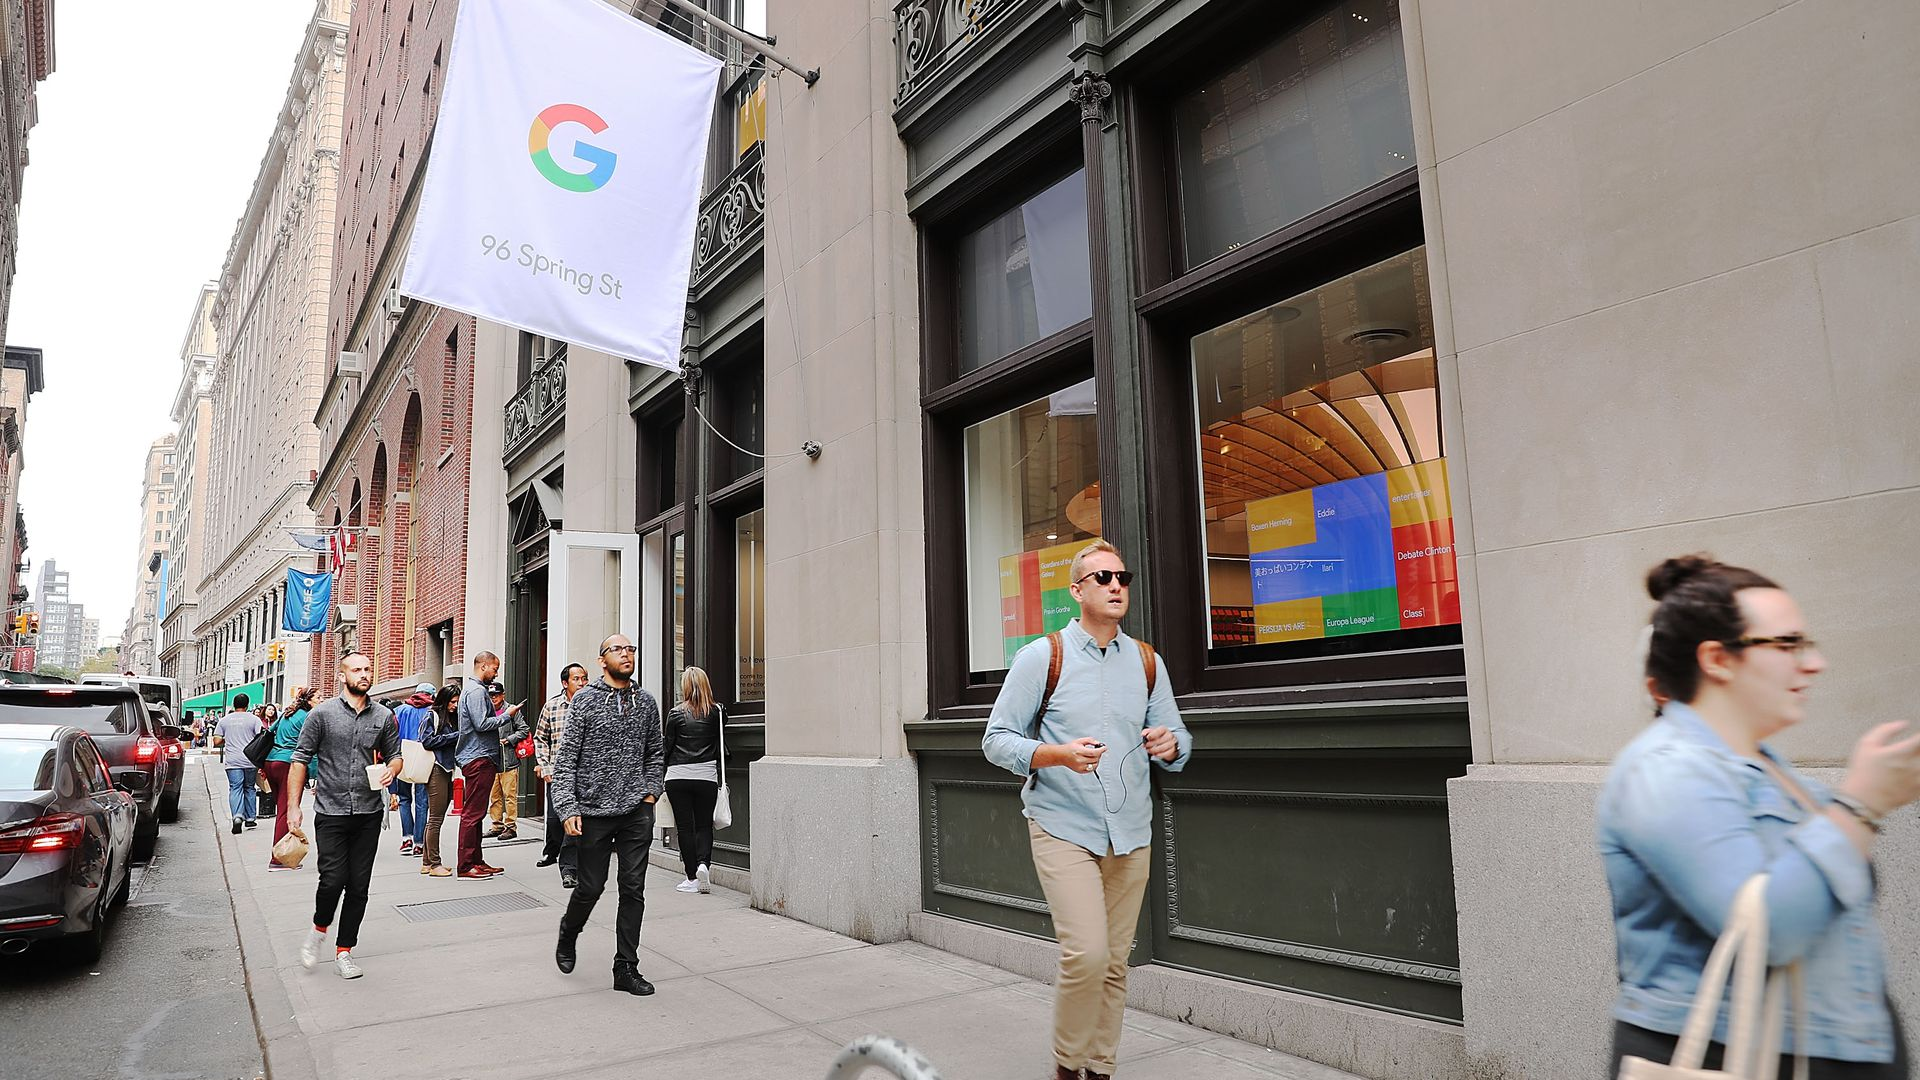 Google pop-up shop in the SoHo, New York City. Photo: Spencer Platt/Getty Images